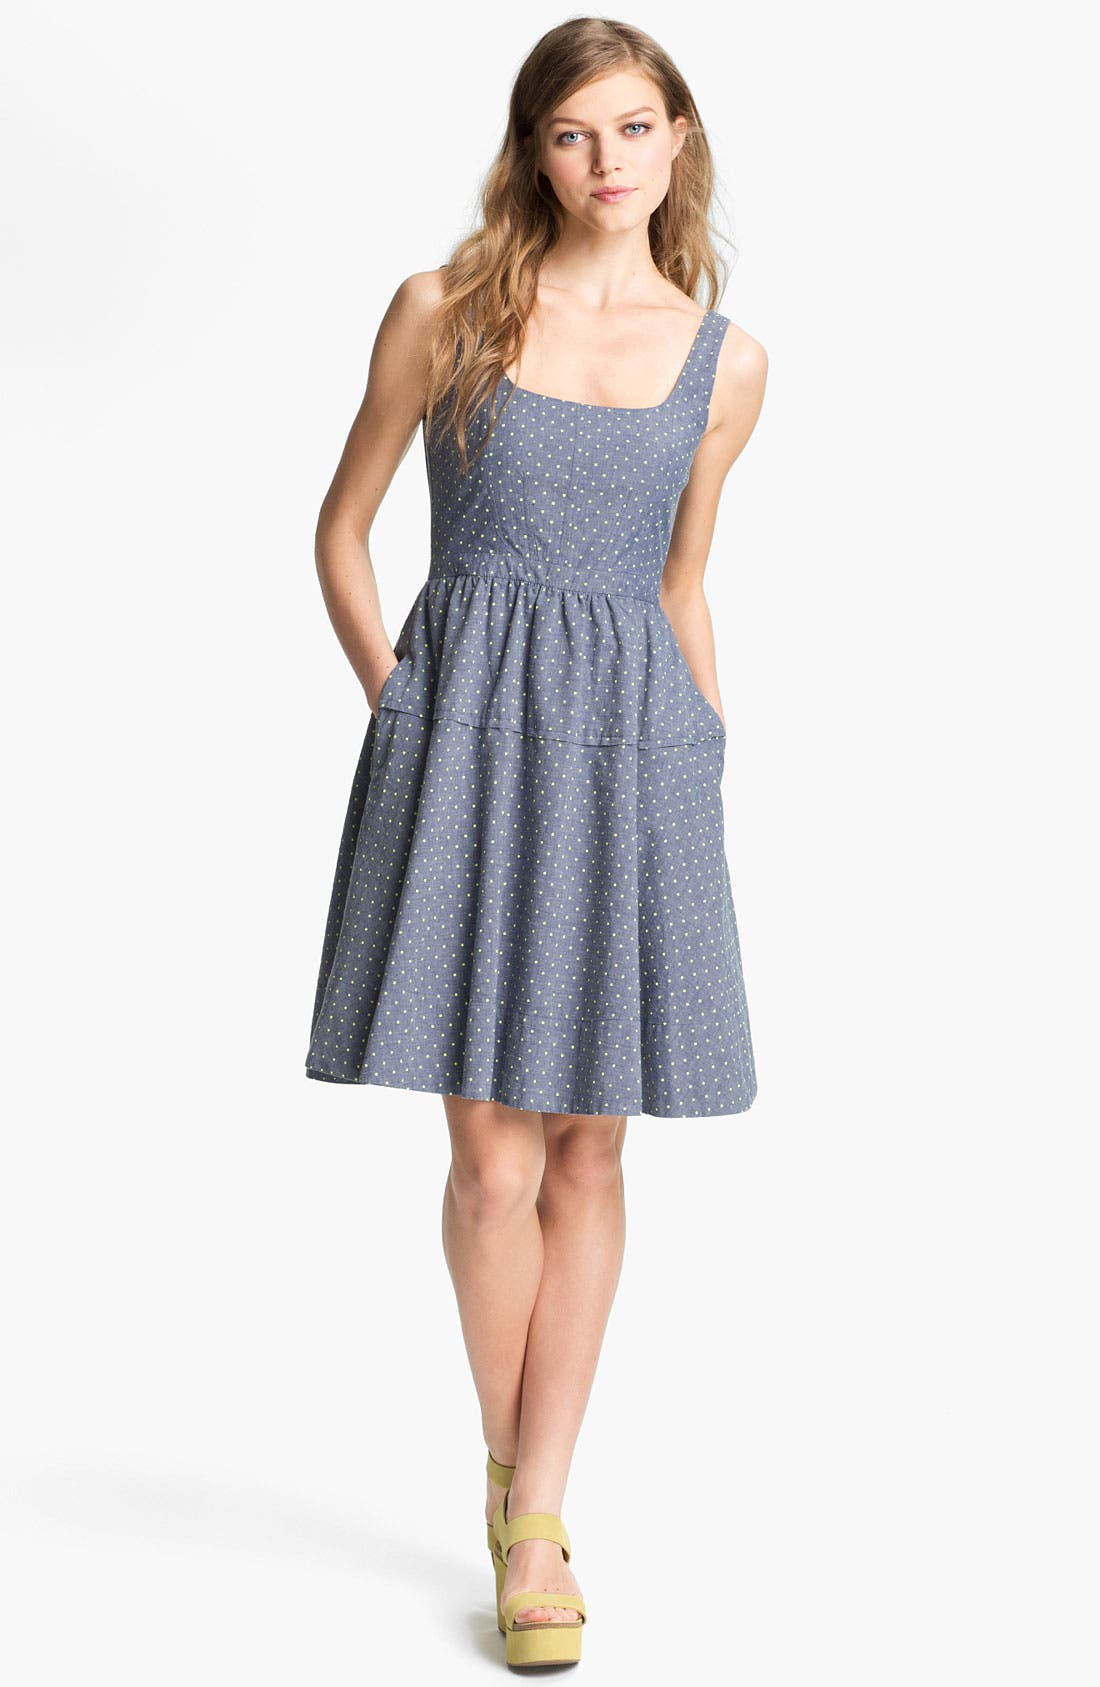 Main Image - MARC BY MARC JACOBS 'Dotty' Cotton Fit & Flare Dress